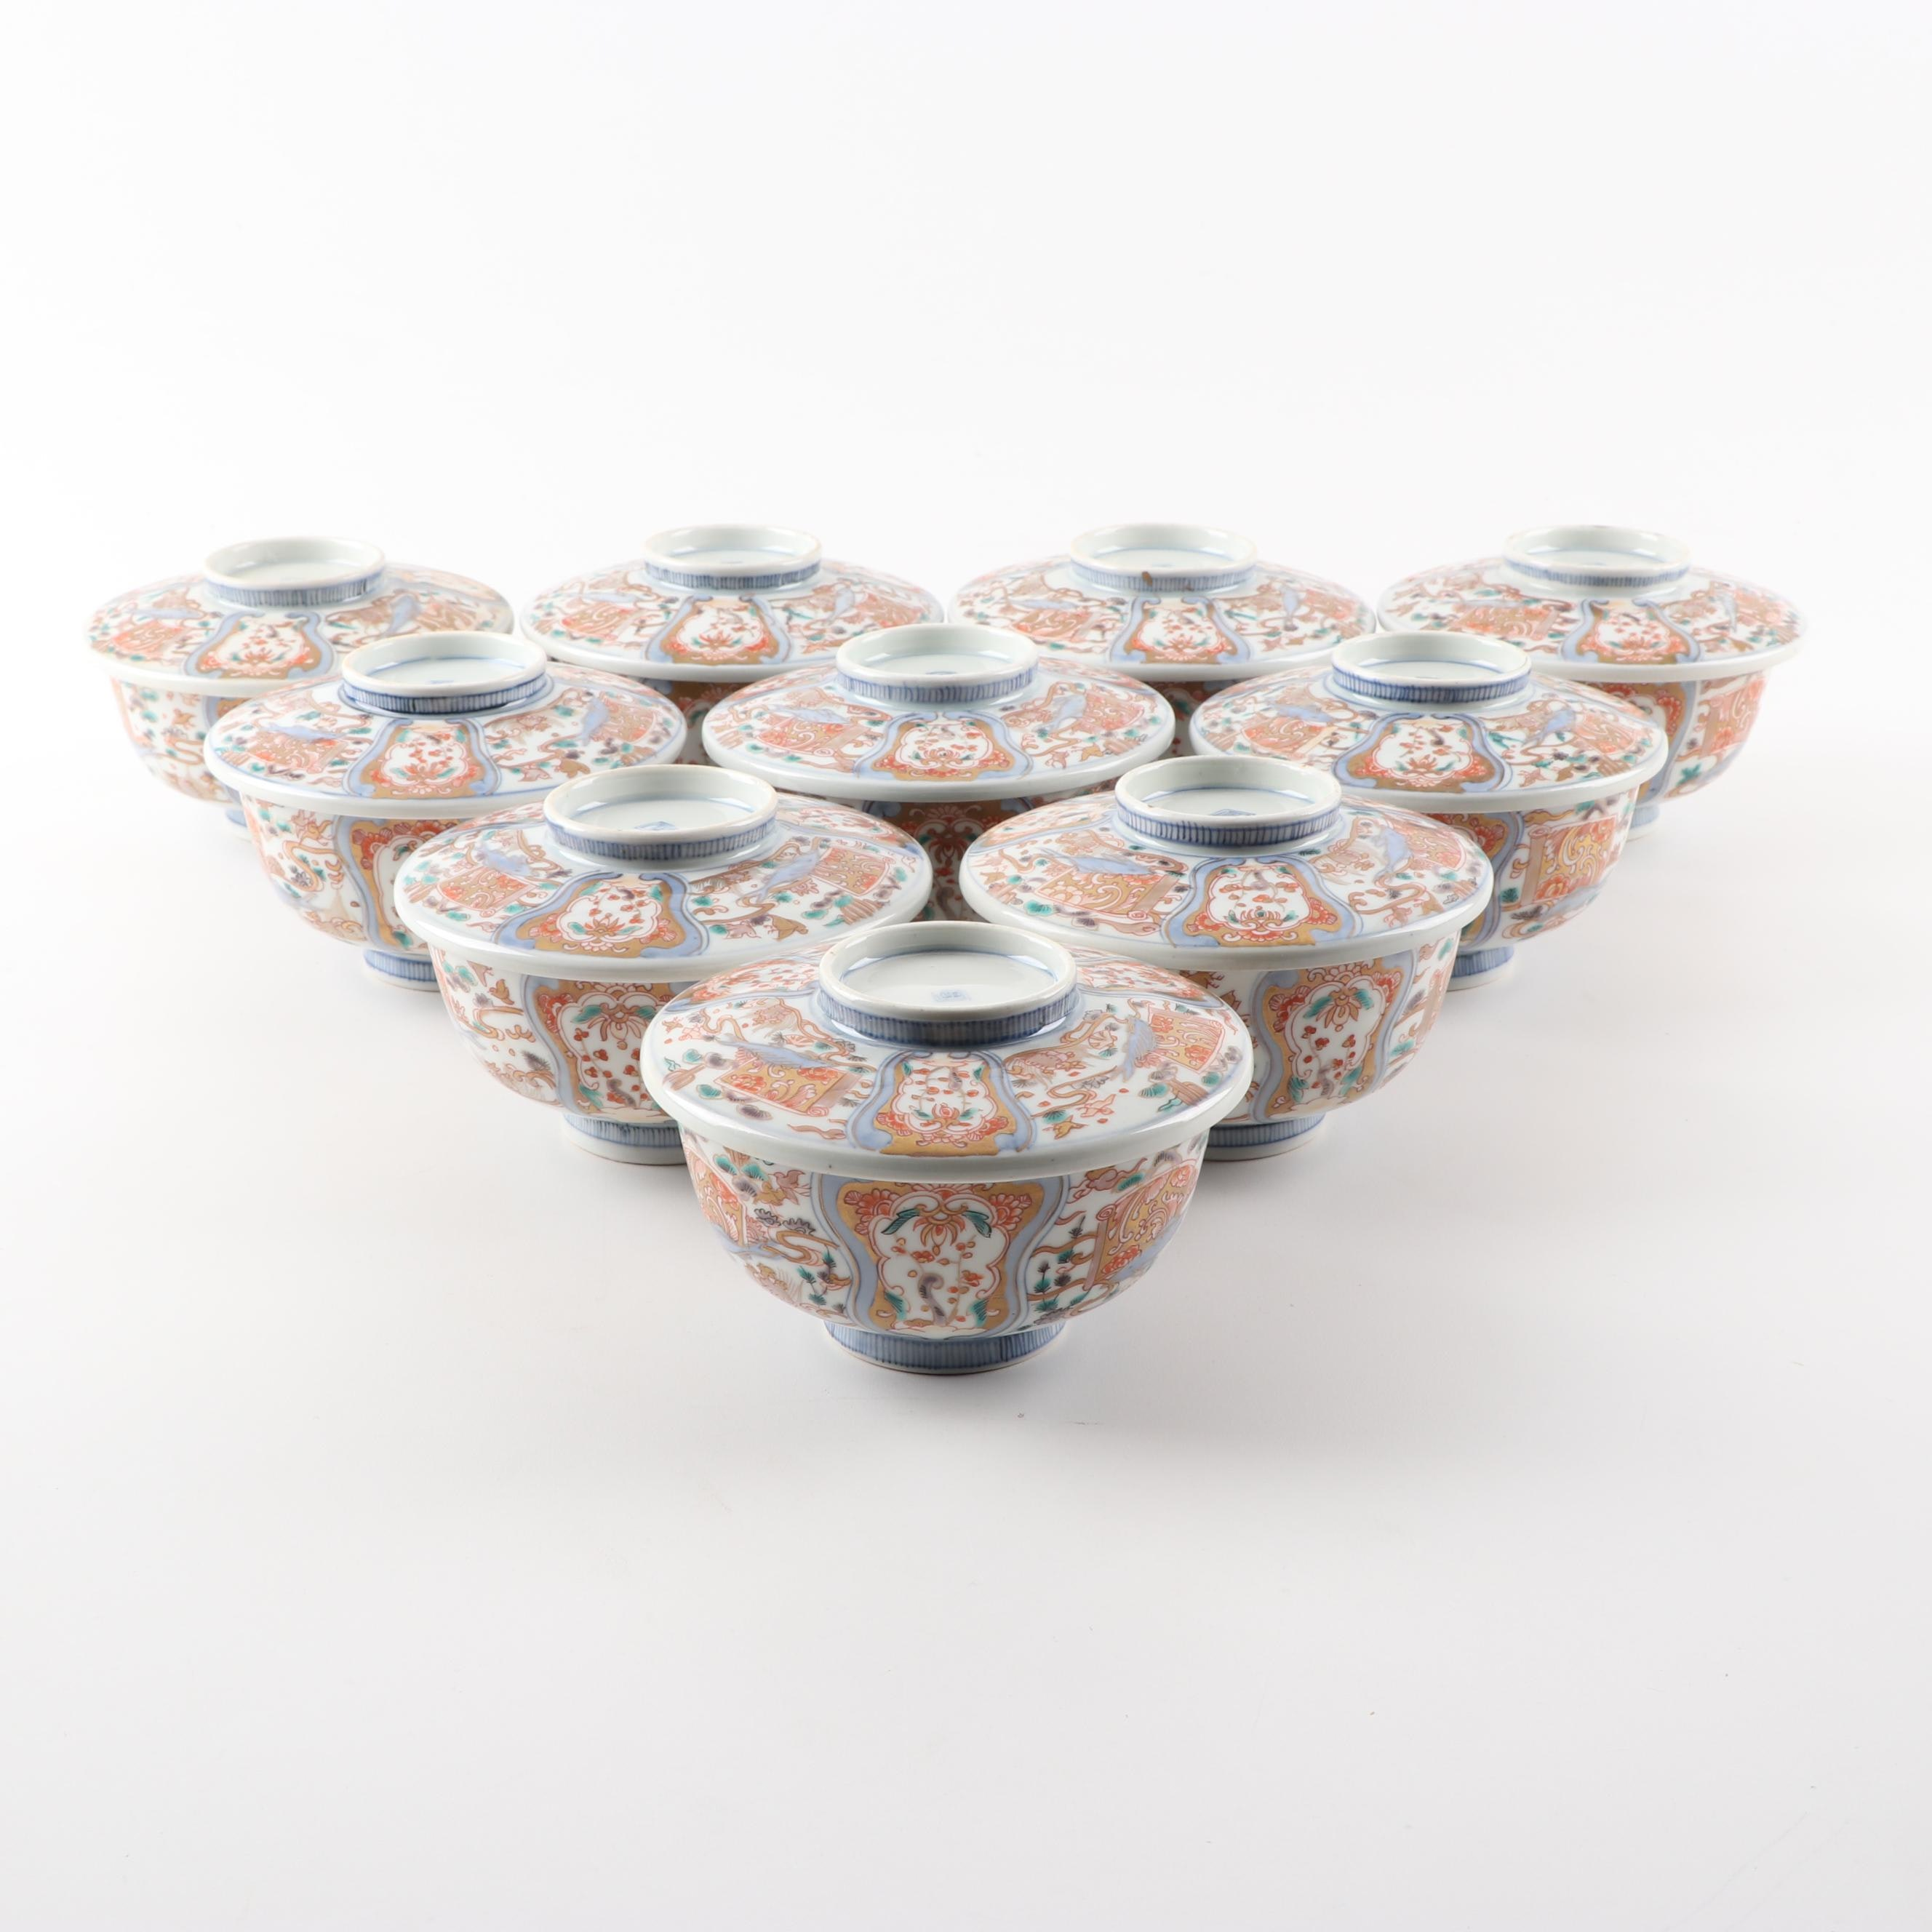 Japanese Imari Soup Bowls with Lids